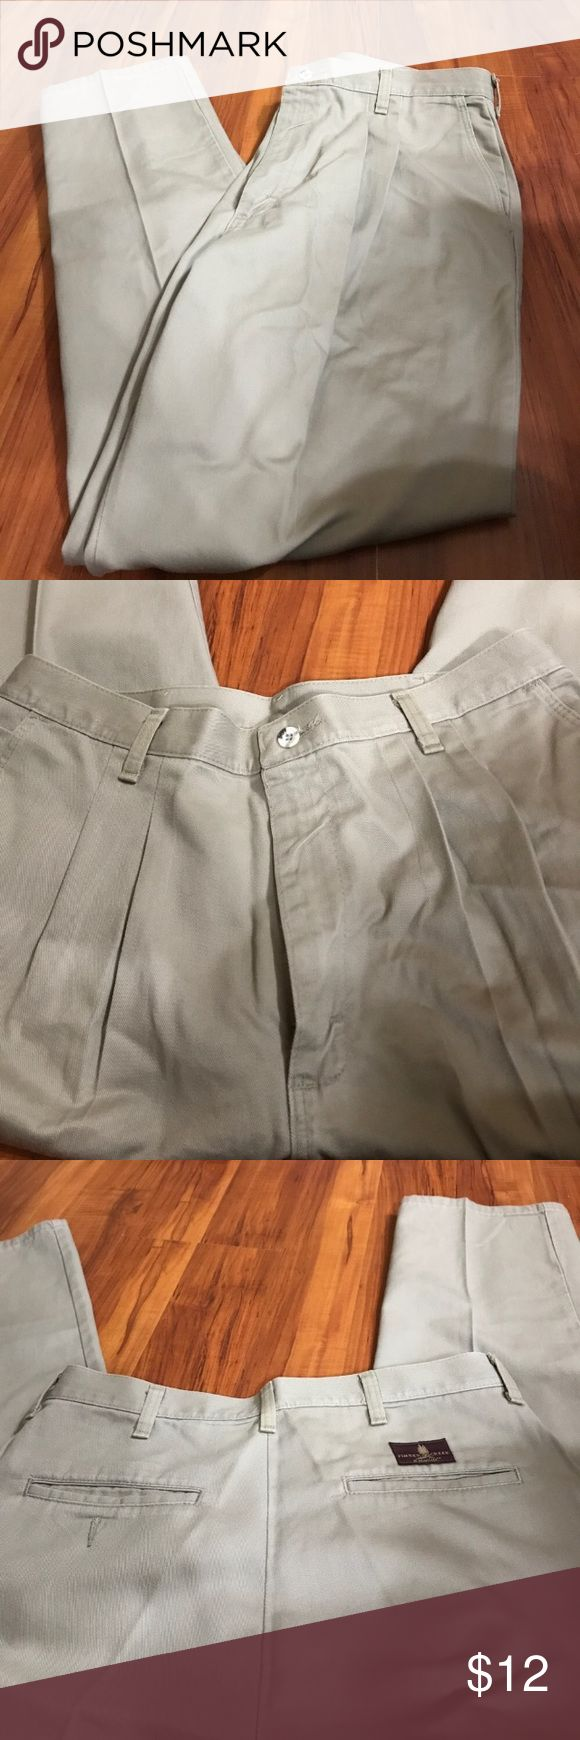 Timber creek men's size 33/30 khaki pants euc Timber Creek men's khaki pants size 33/30 in good used condition. They are 100% cotton. No stains or holes! Make an offer! Timber Creek Pants Chinos & Khakis